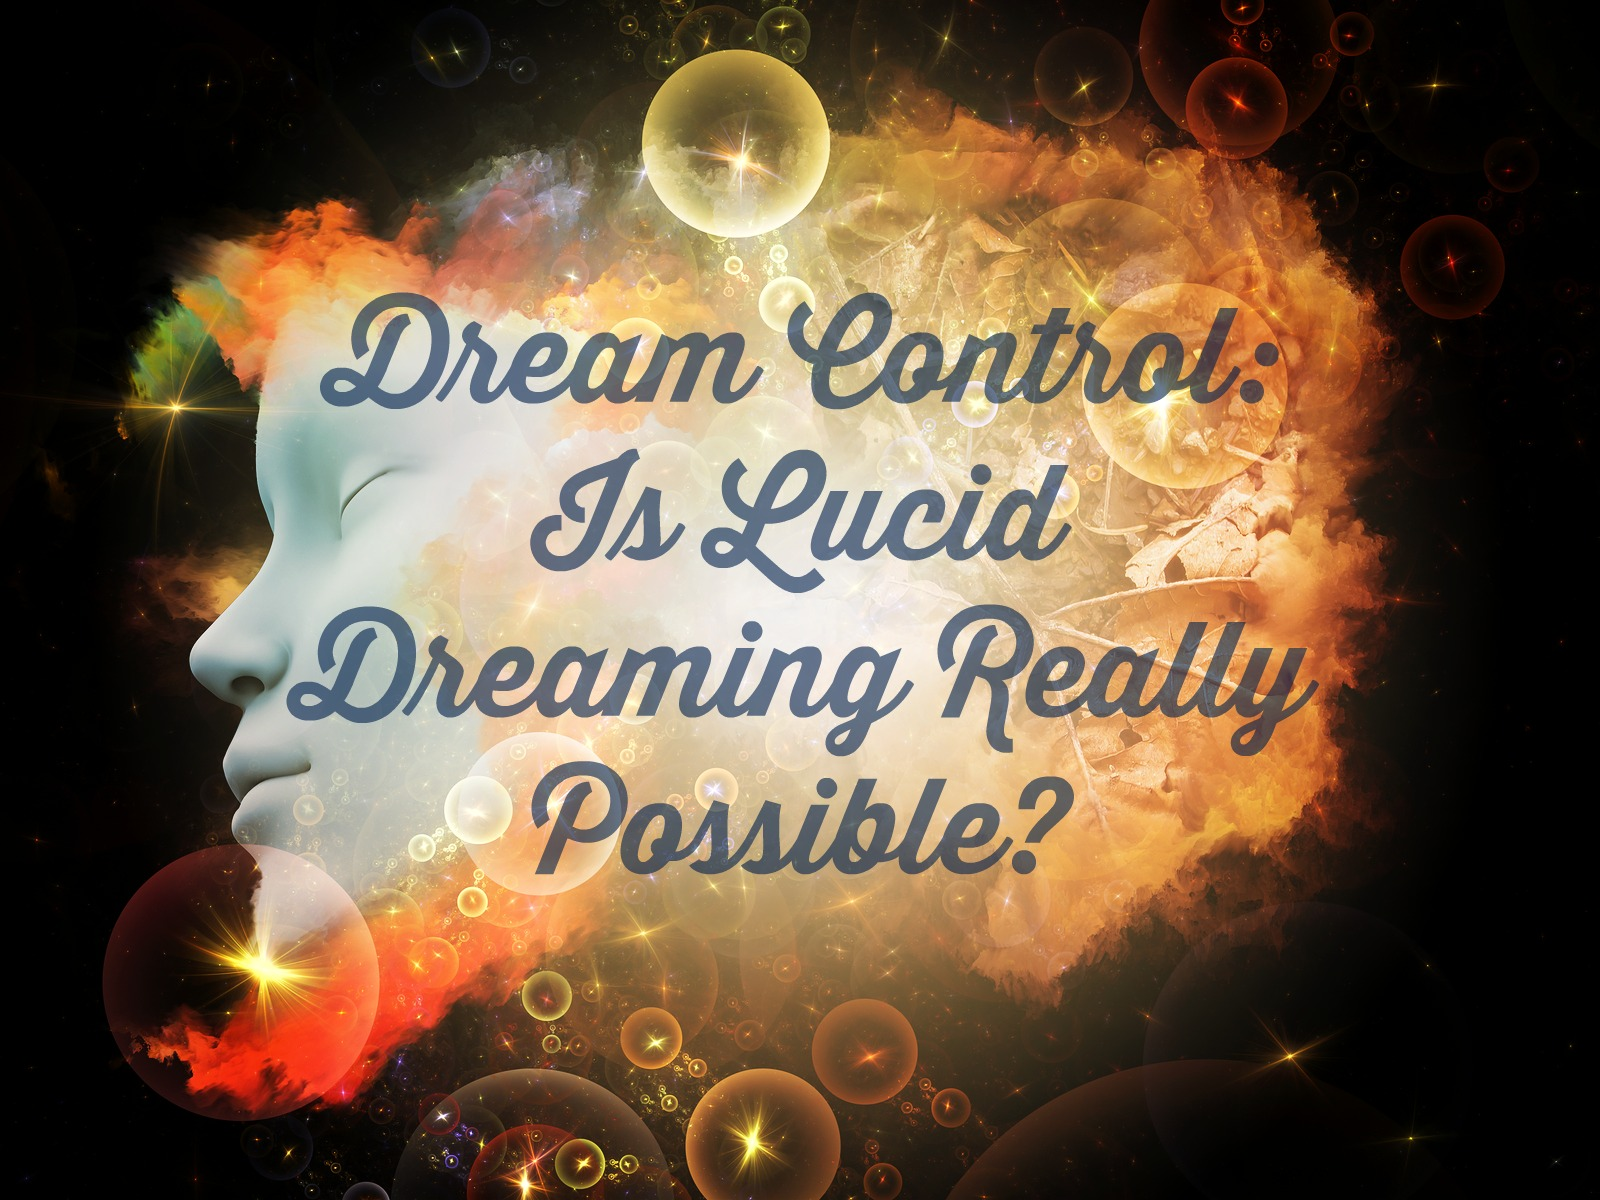 Dream Control: Is Lucid Dreaming Really Possible?